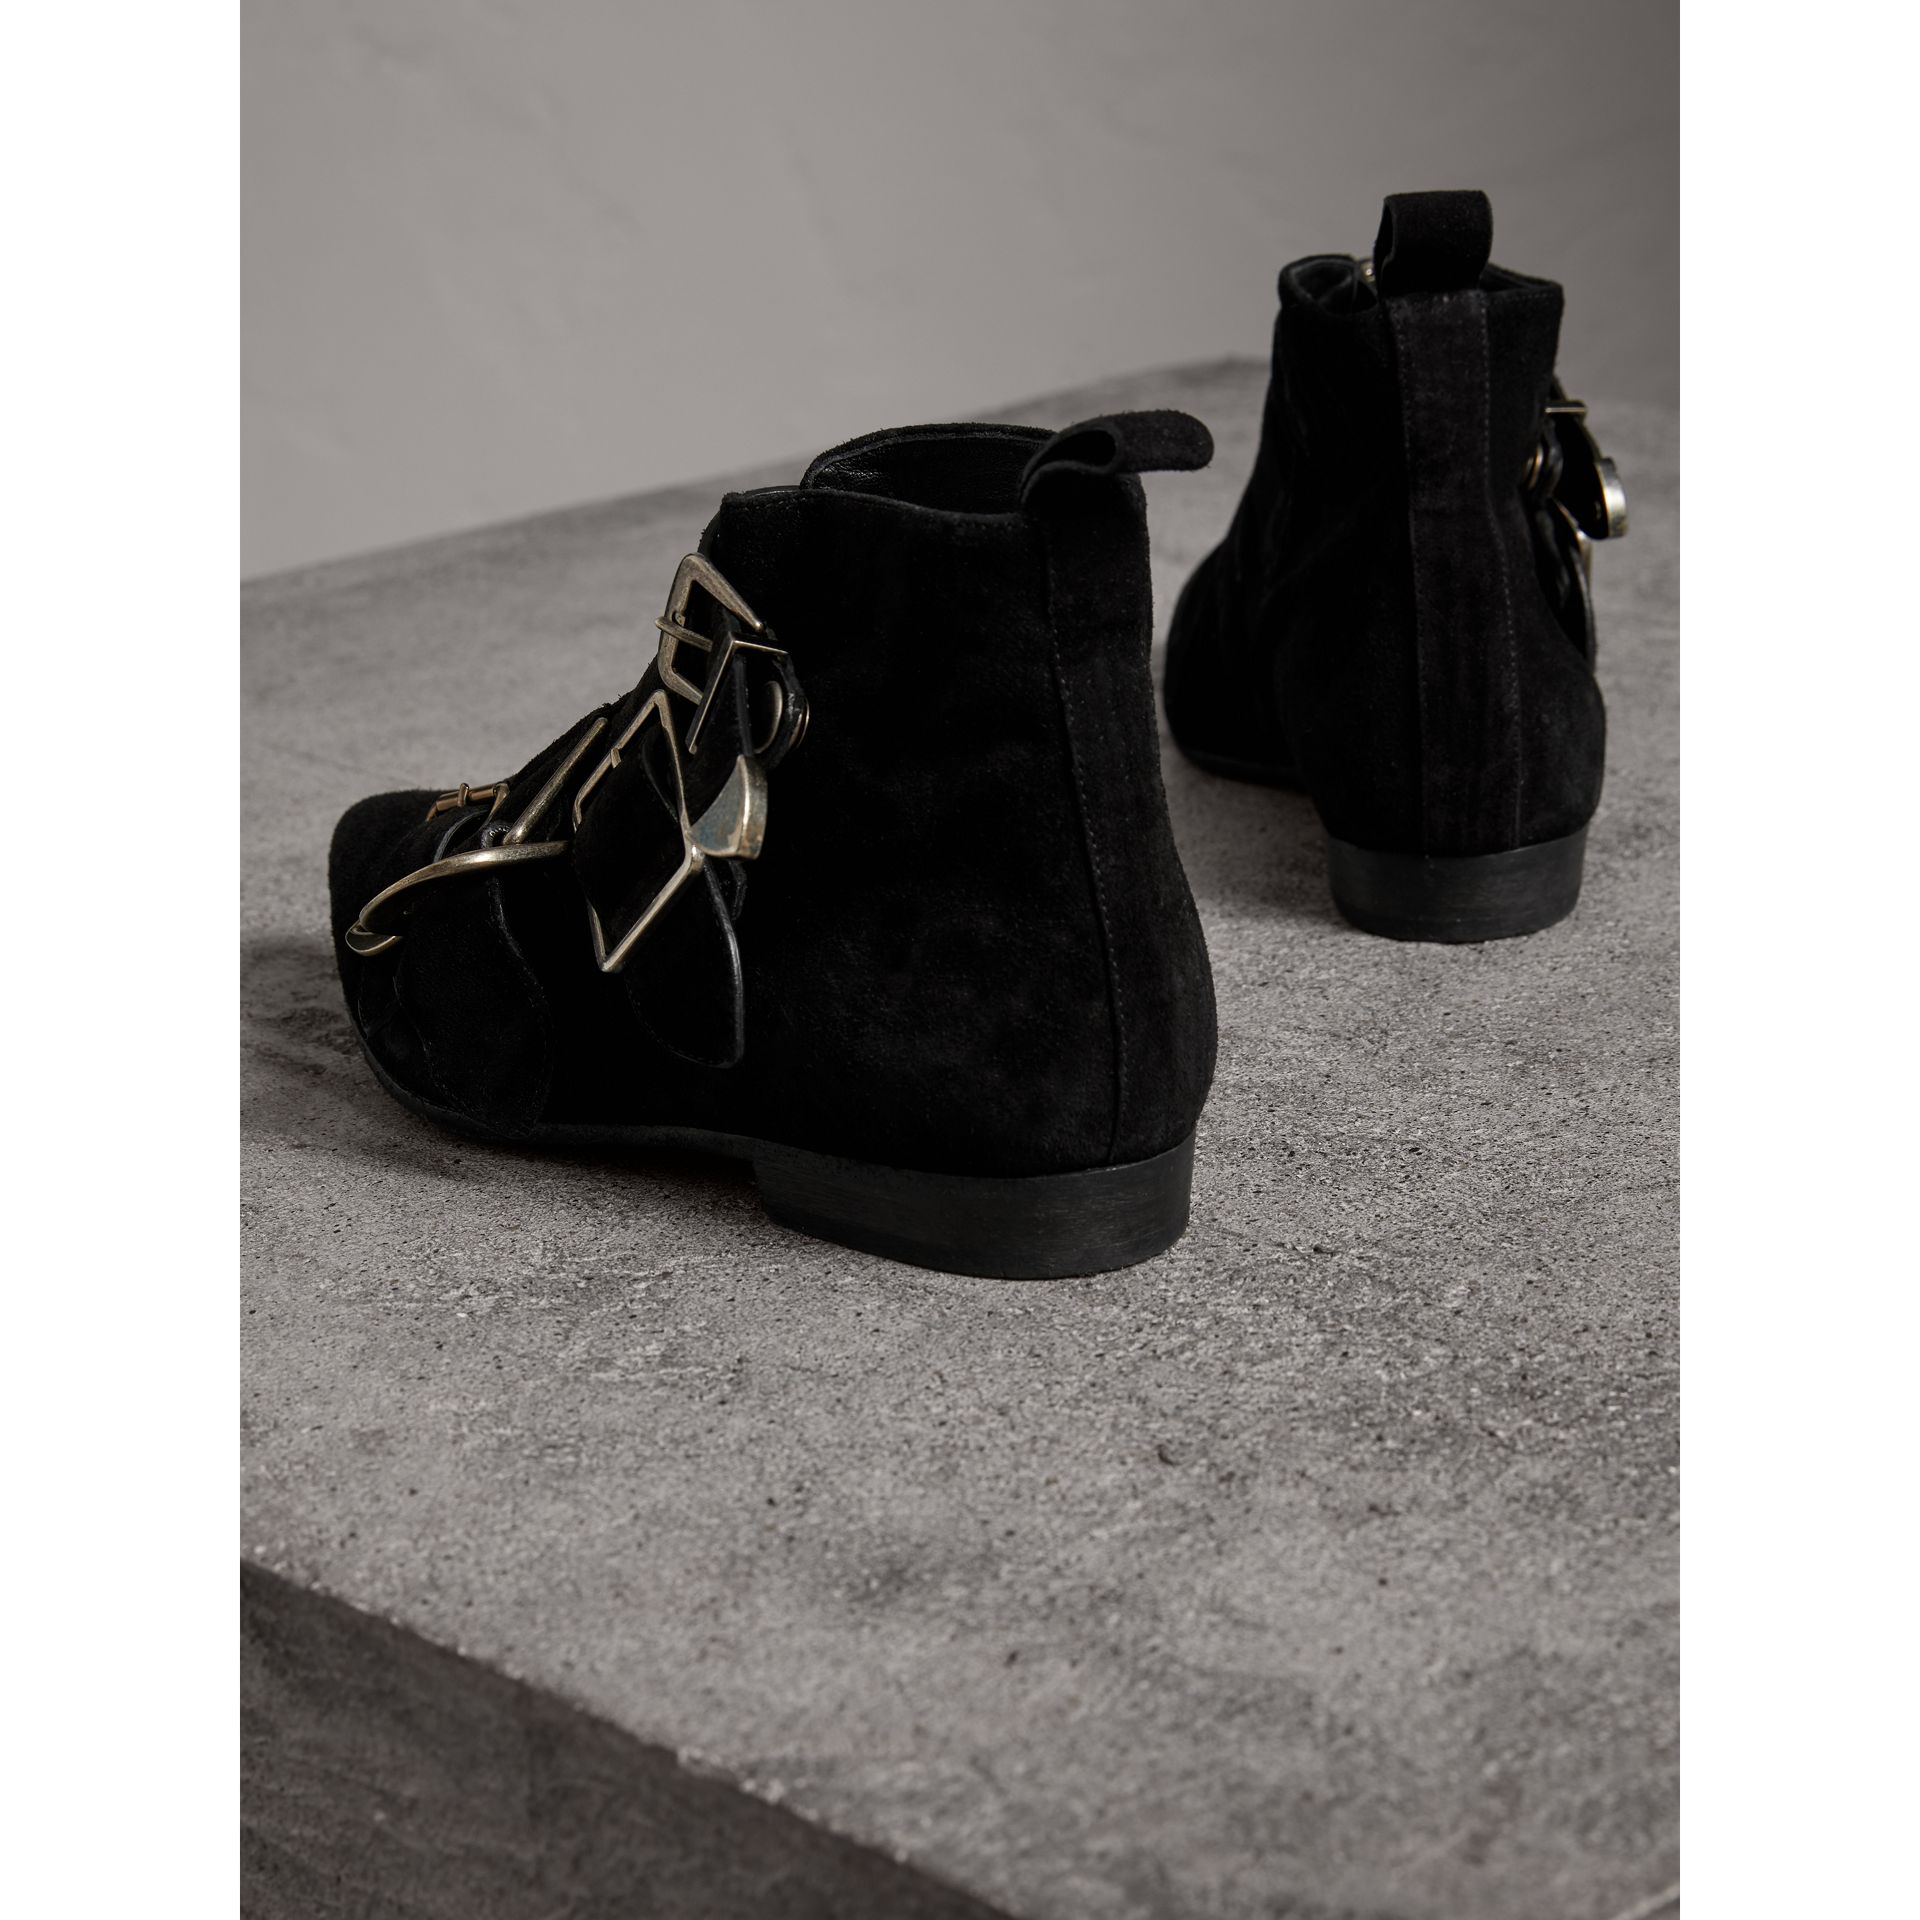 Bottines en cuir velours avec boucles (Noir) - Femme | Burberry Canada - photo de la galerie 2